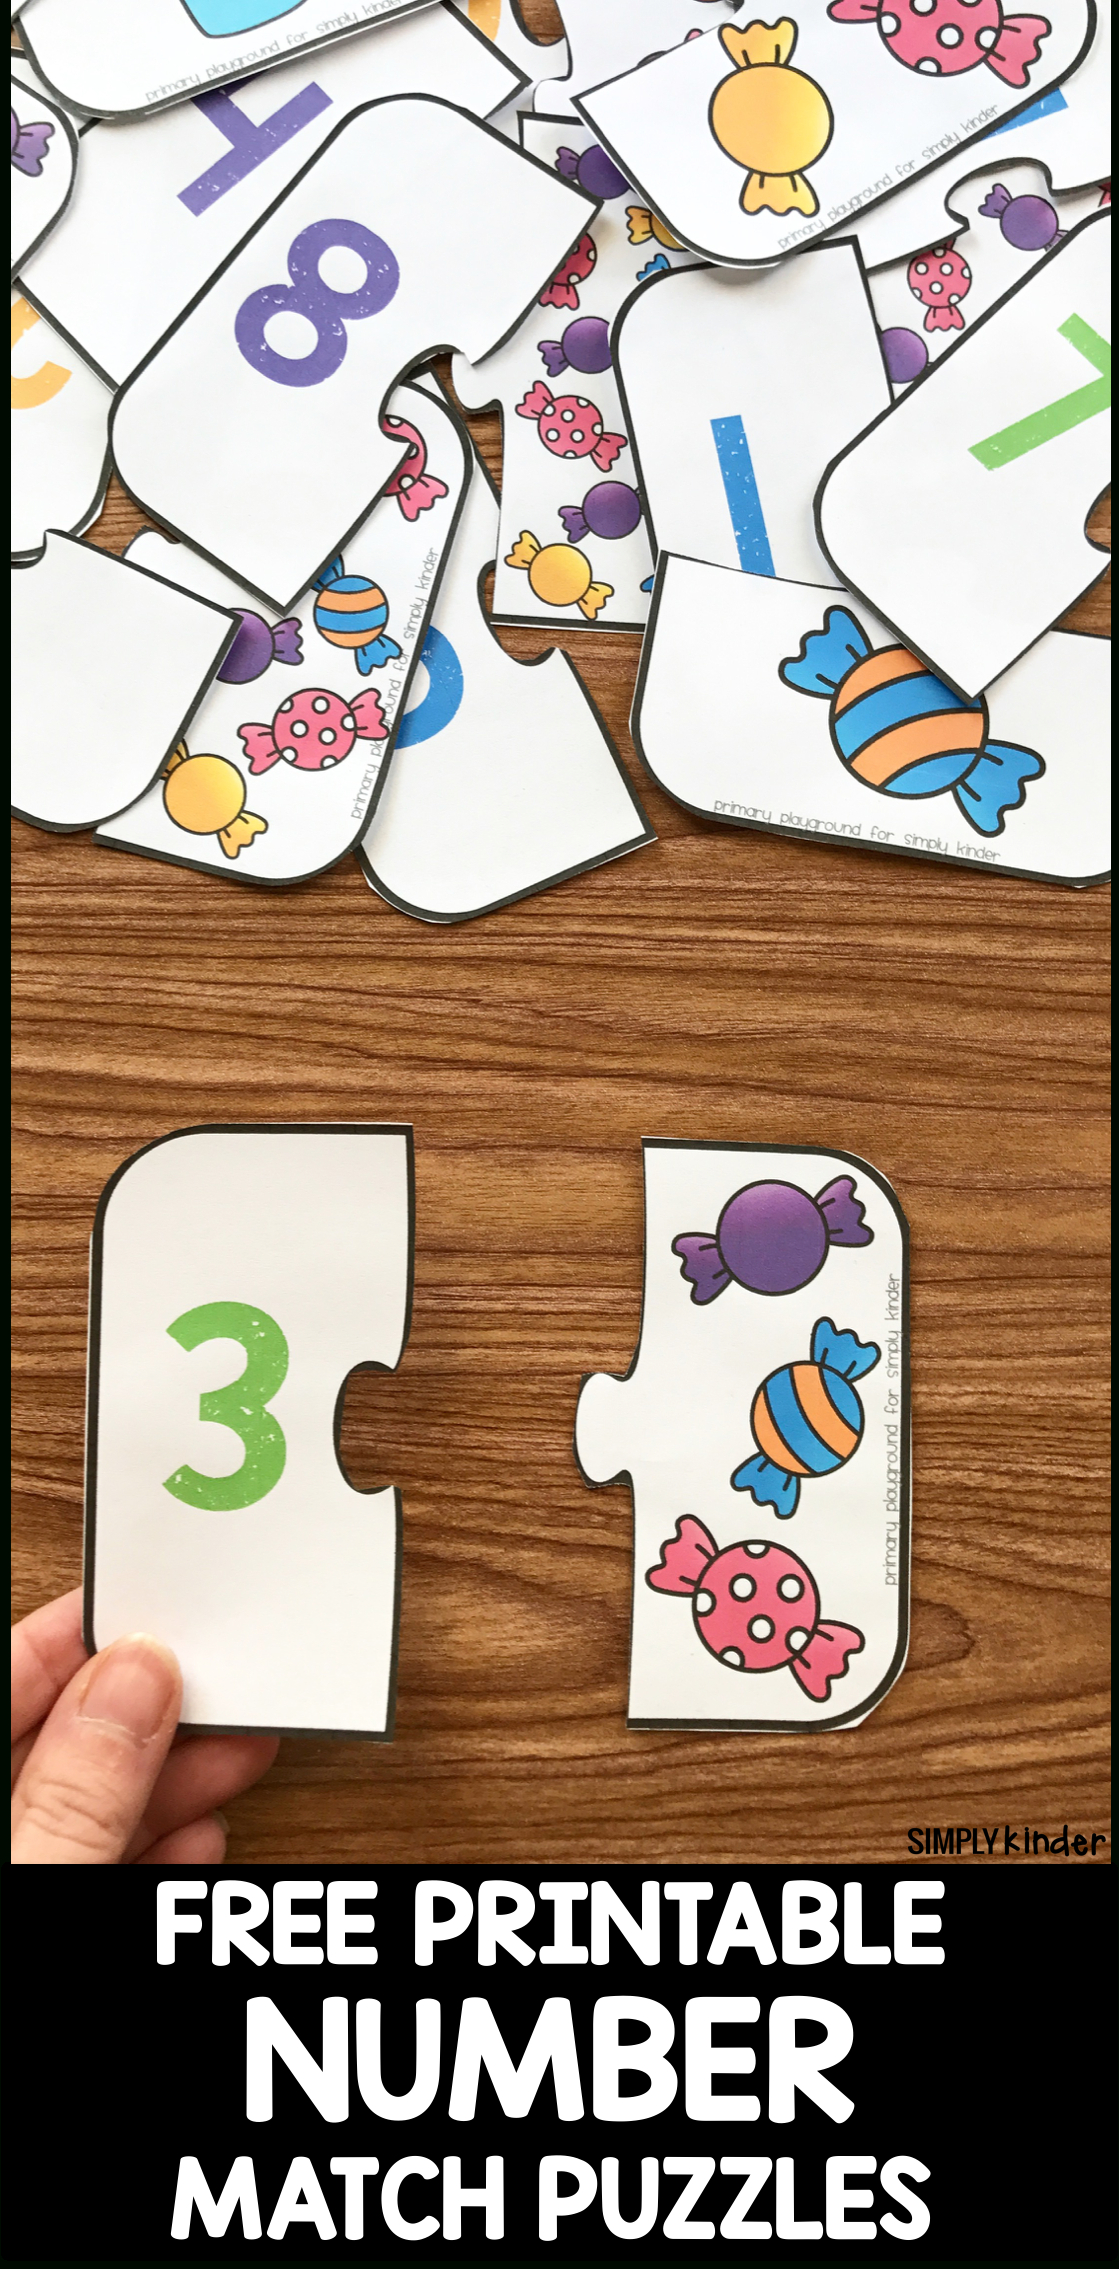 Free Printable Number Match Puzzles - Simply Kinder - Printable Number Puzzles